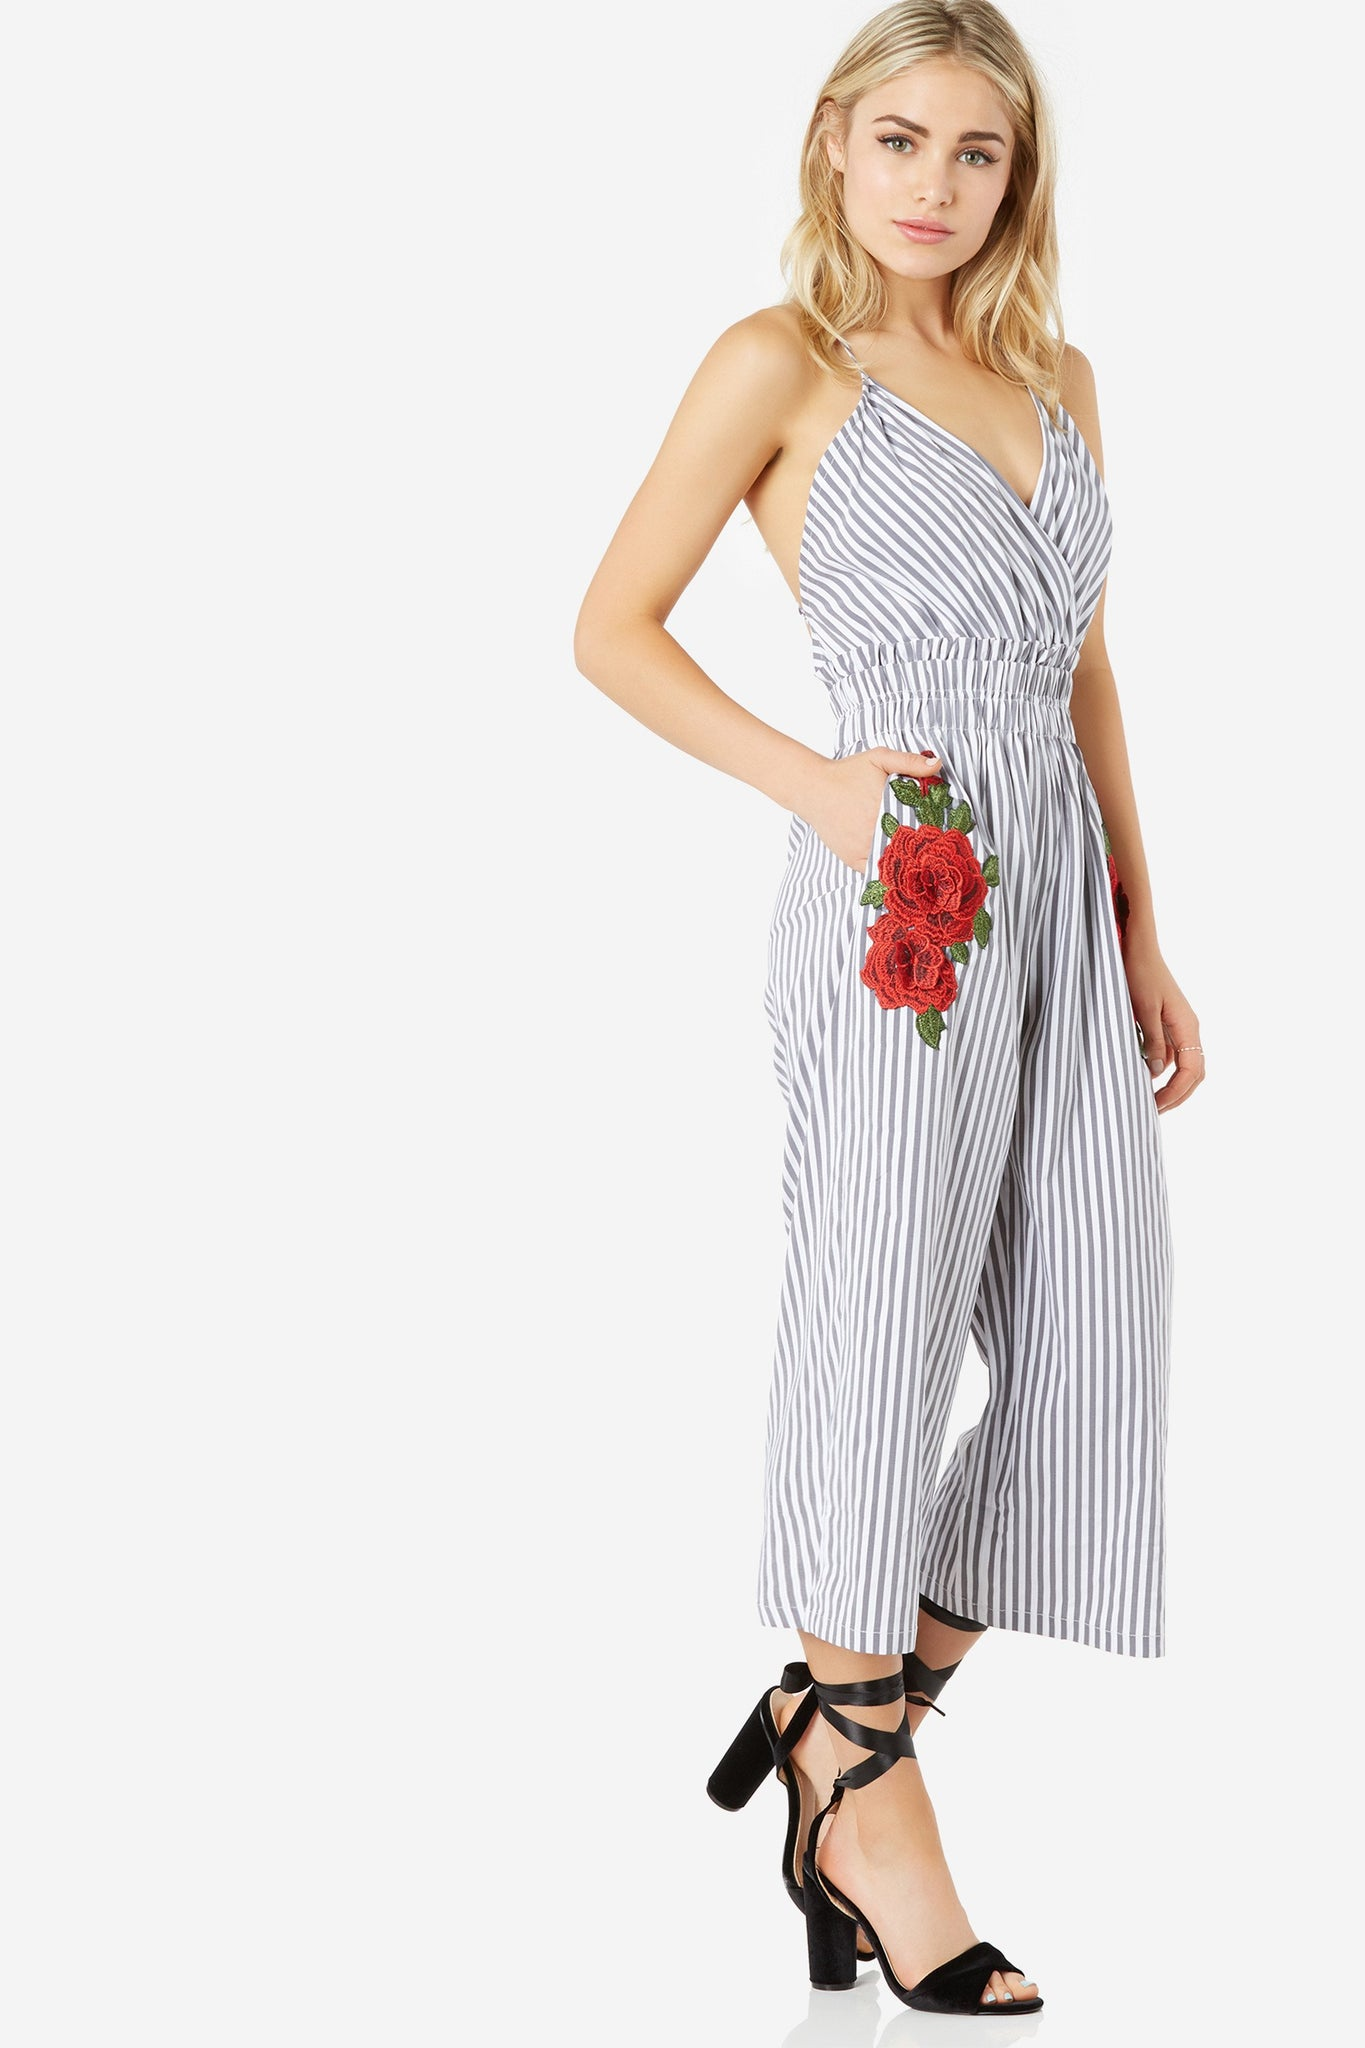 Sleeveless jumpsuit with stripe patterns throughout. Bold floral patches with wide leg fit.